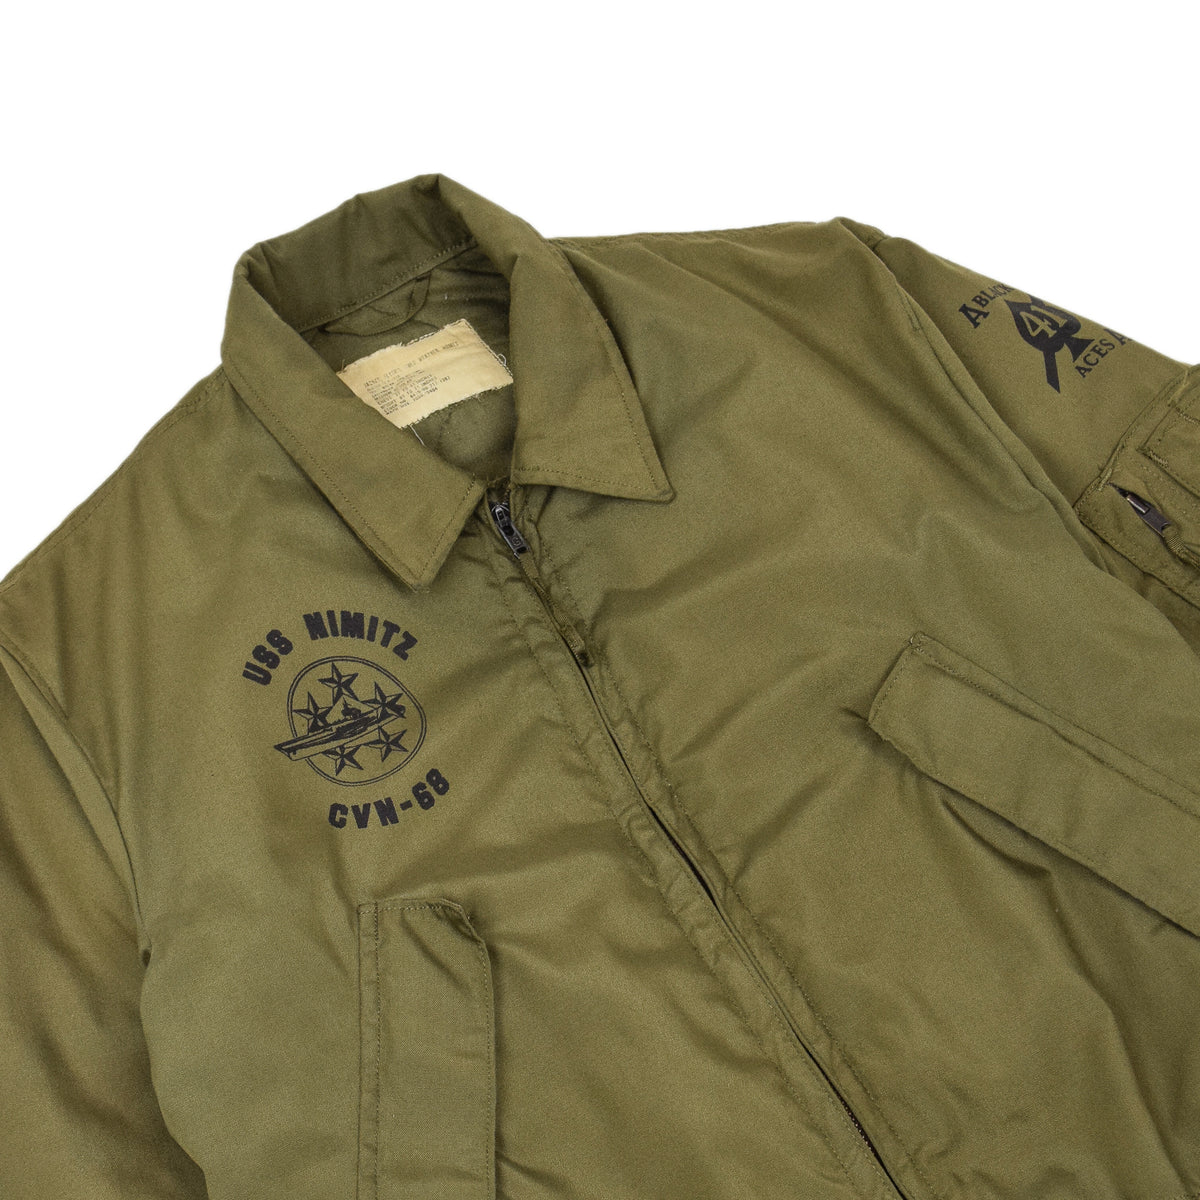 Vintage 70s US Air Force Flyer's Cold Weather USS Nimitz Nomex Bomber Jacket M chest